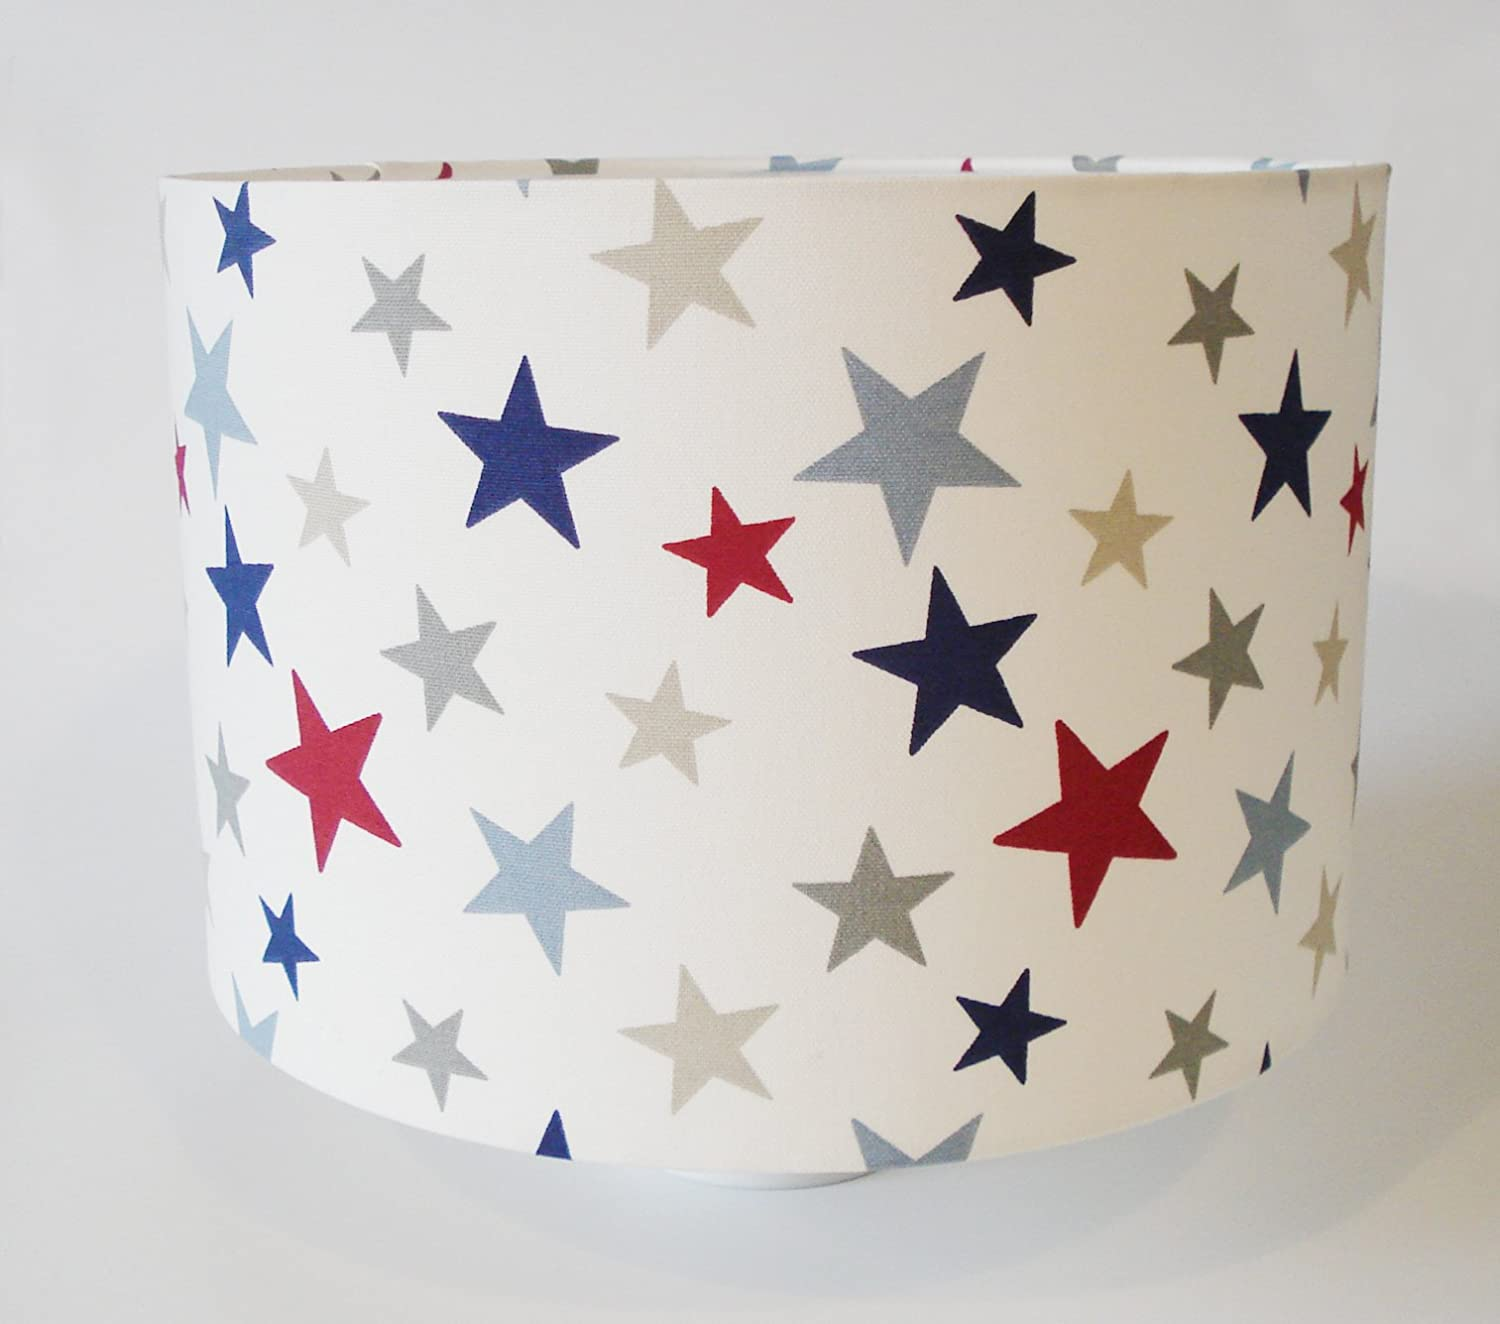 Star fabric lampshade large red blue grey stars amazon star fabric lampshade large red blue grey stars amazon lighting mozeypictures Images